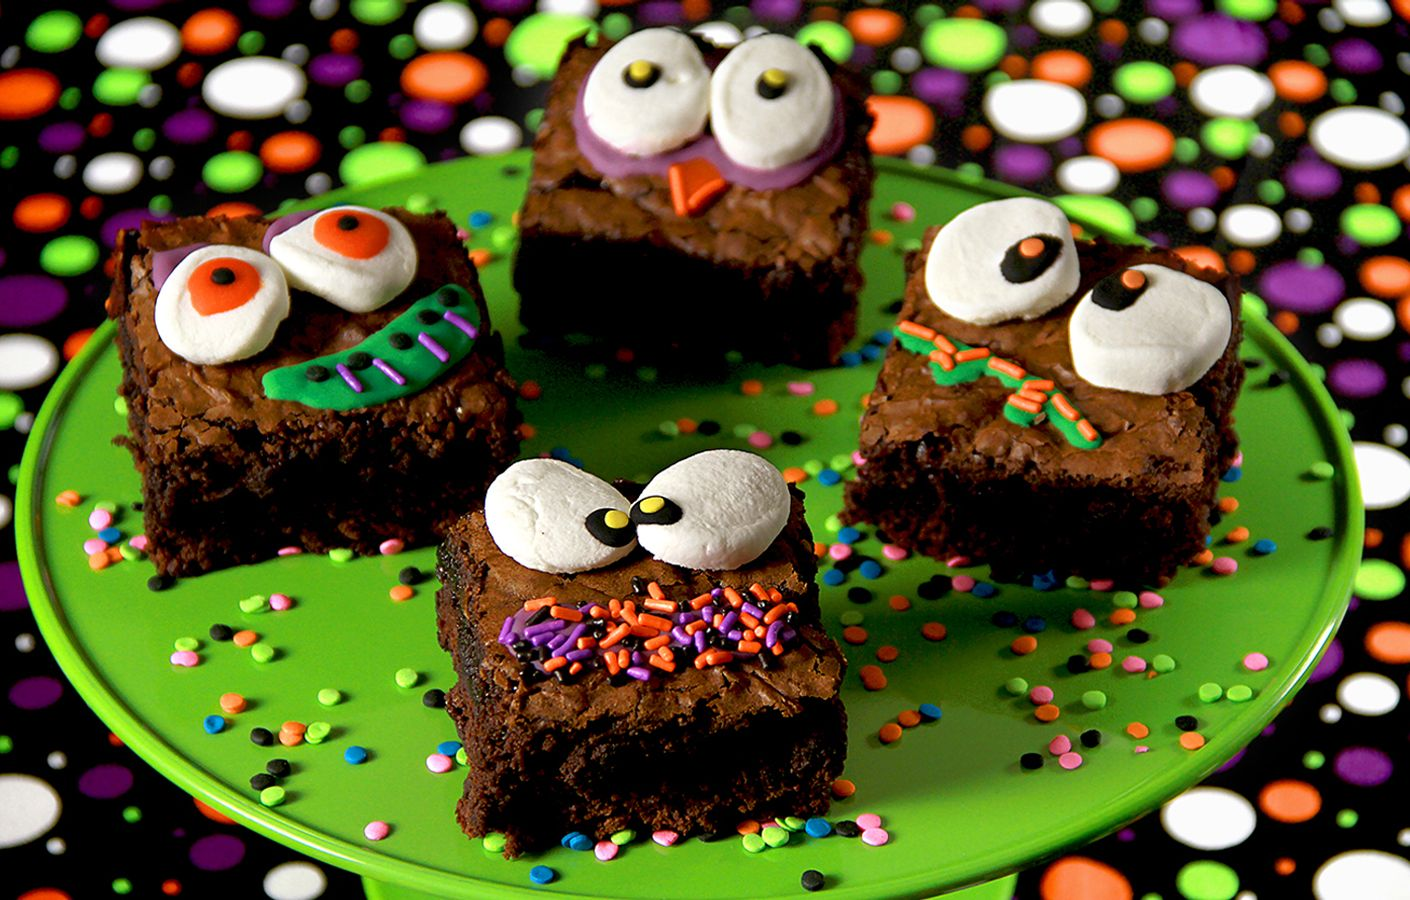 recipe make your halloween party a blast with monster face brownies use marshmallows and ghoulish sprinkles to create this delicious dessert recipe from - Halloween Brownie Recipe